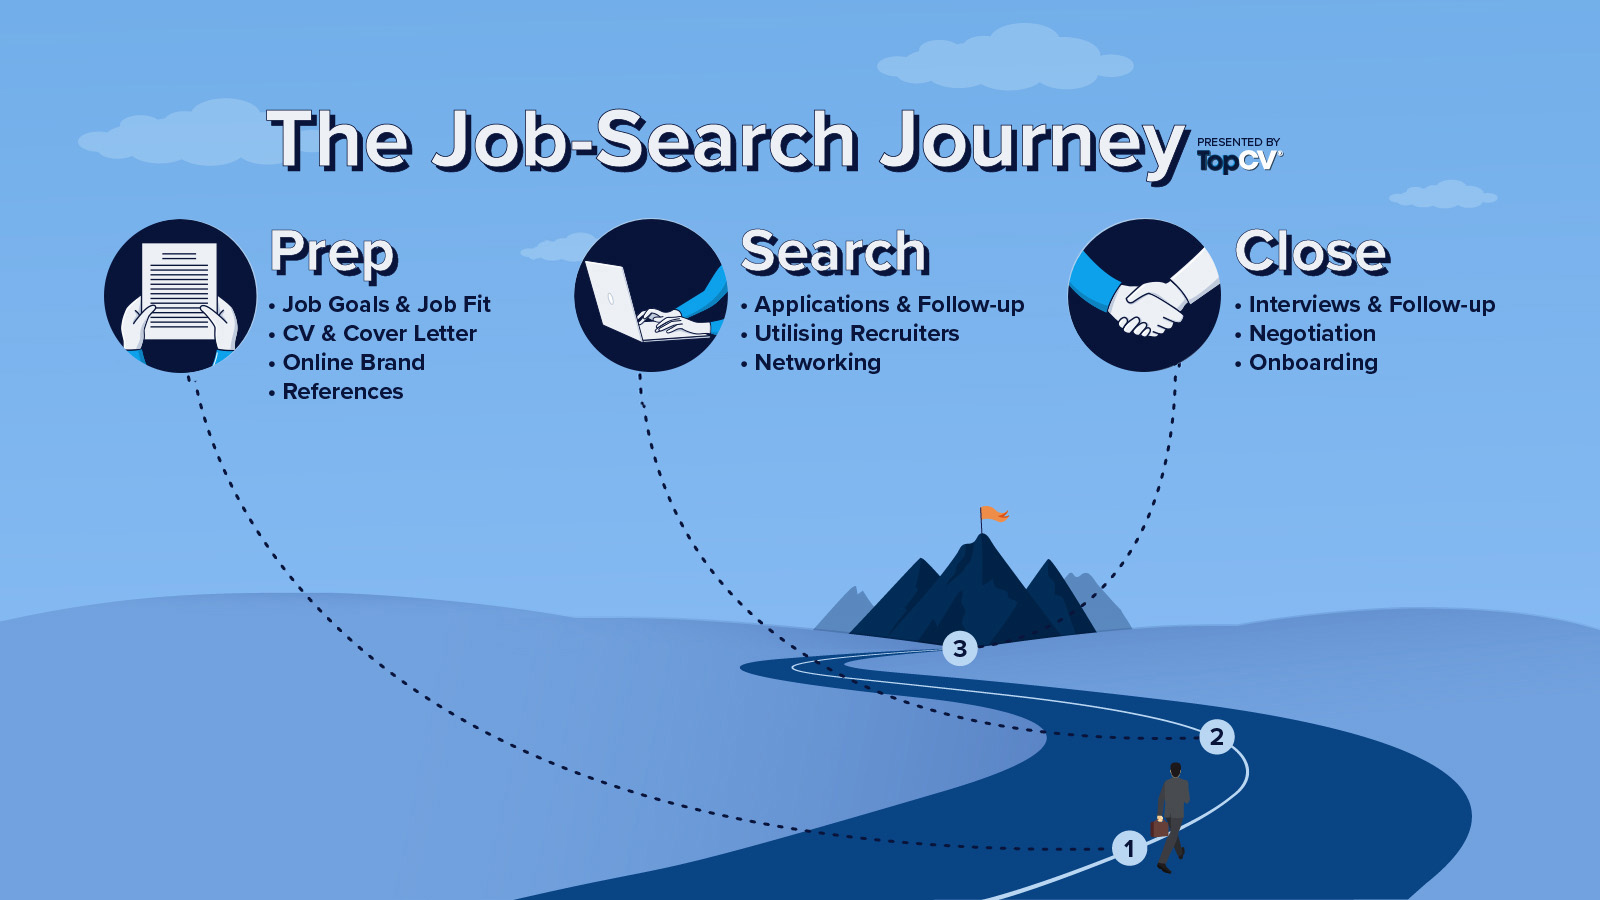 TopCV job search journey